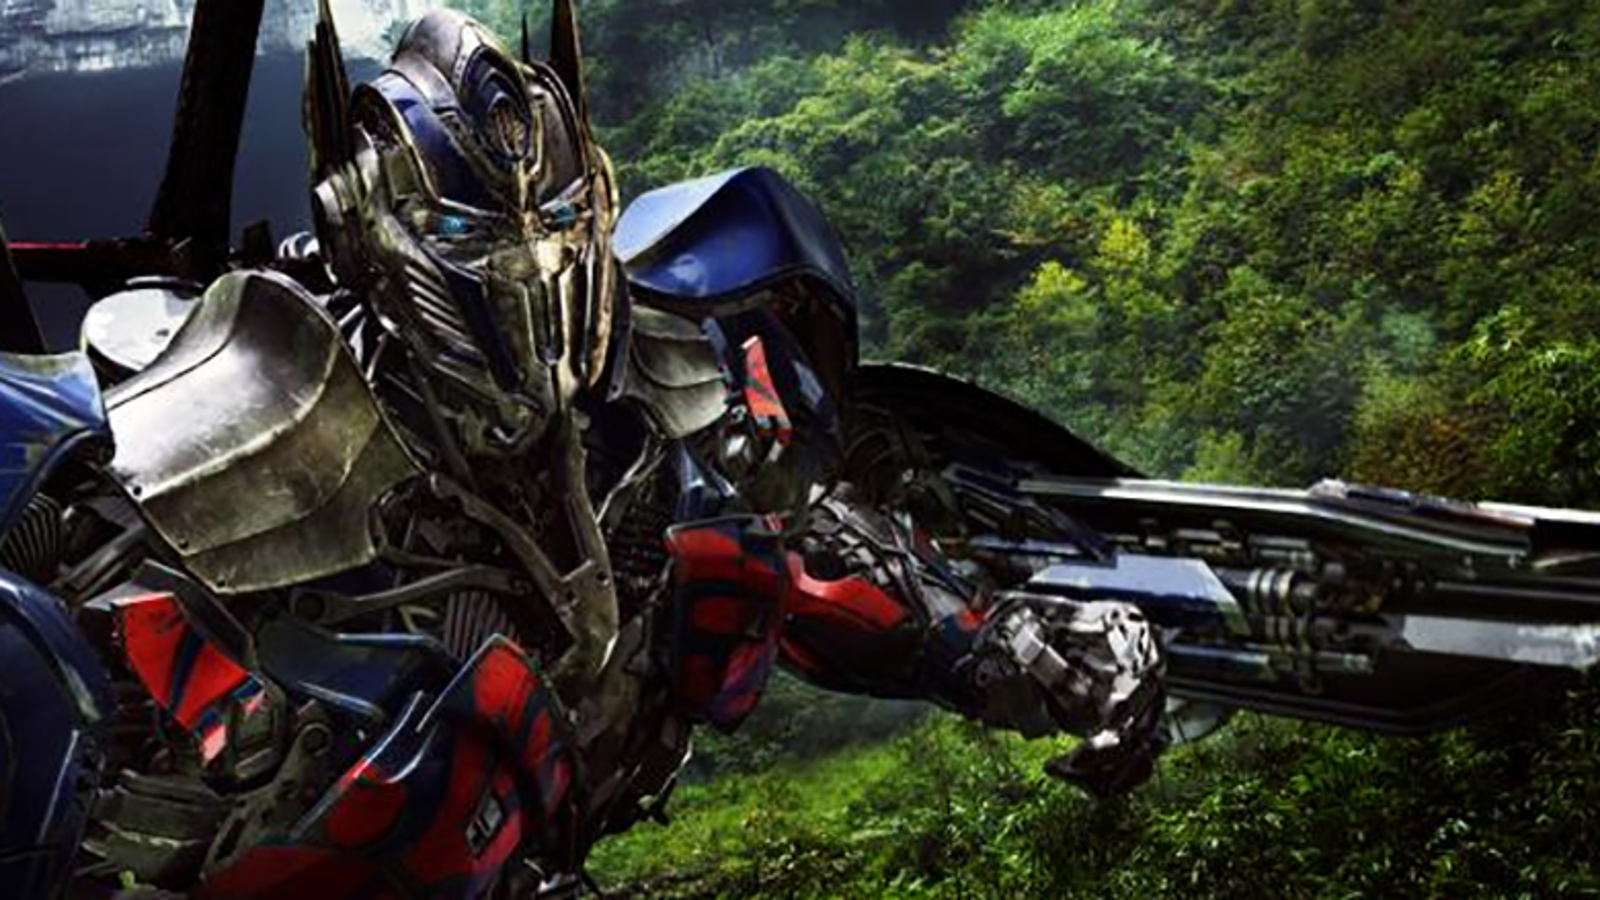 Transformers VFX Guru Explains Why Building CGI Bots Is Getting Harder